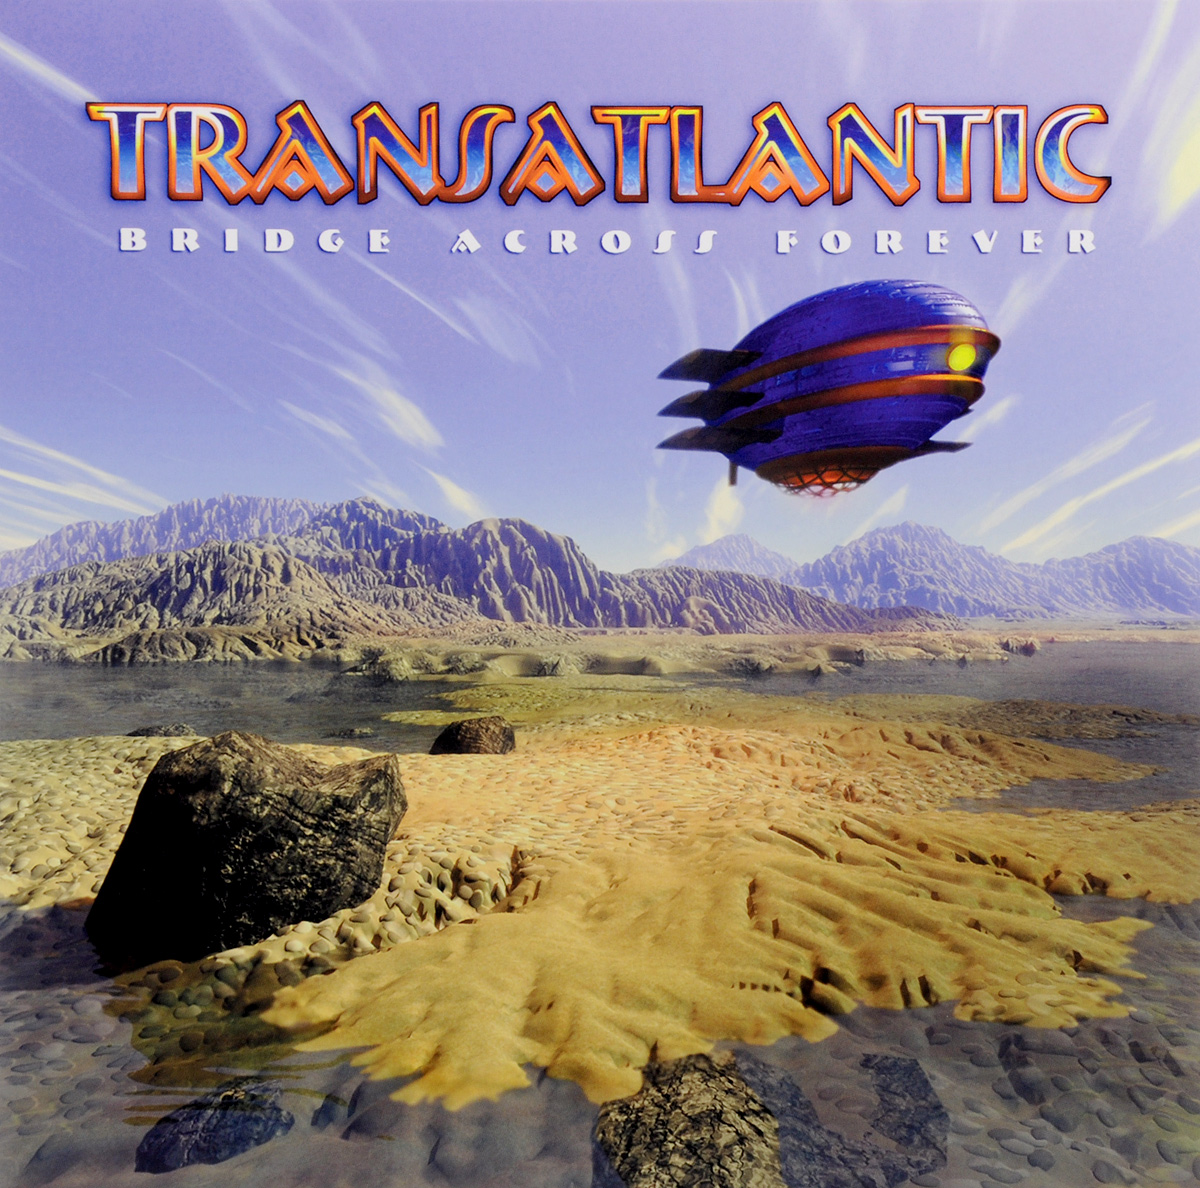 Transatlantic Transatlantic. Bridge Across Forever (2 LP + CD) yes – topographic drama live across america 3 lp